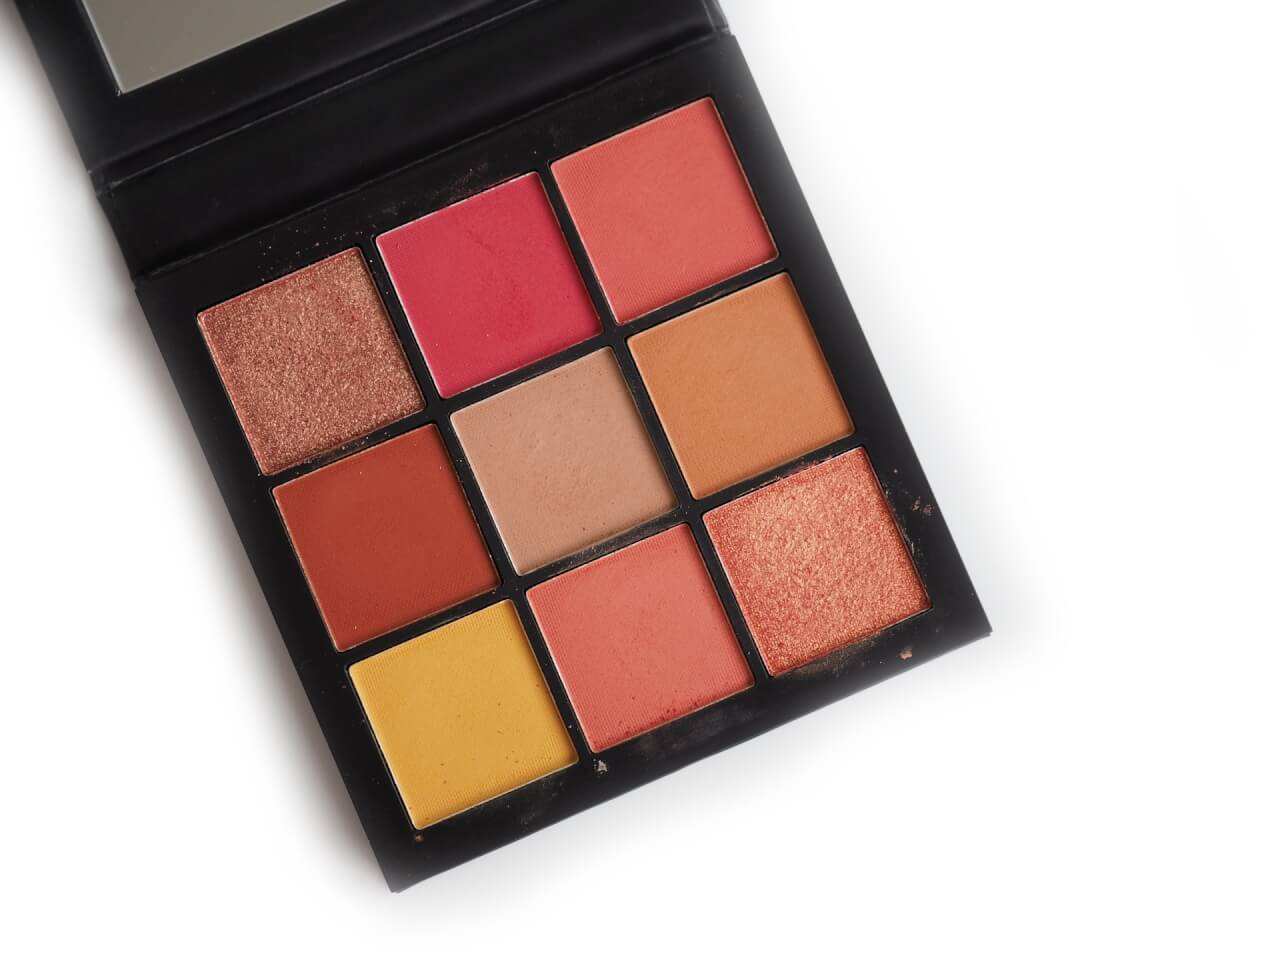 Huda Coral Obsessions Eyeshadow Palette